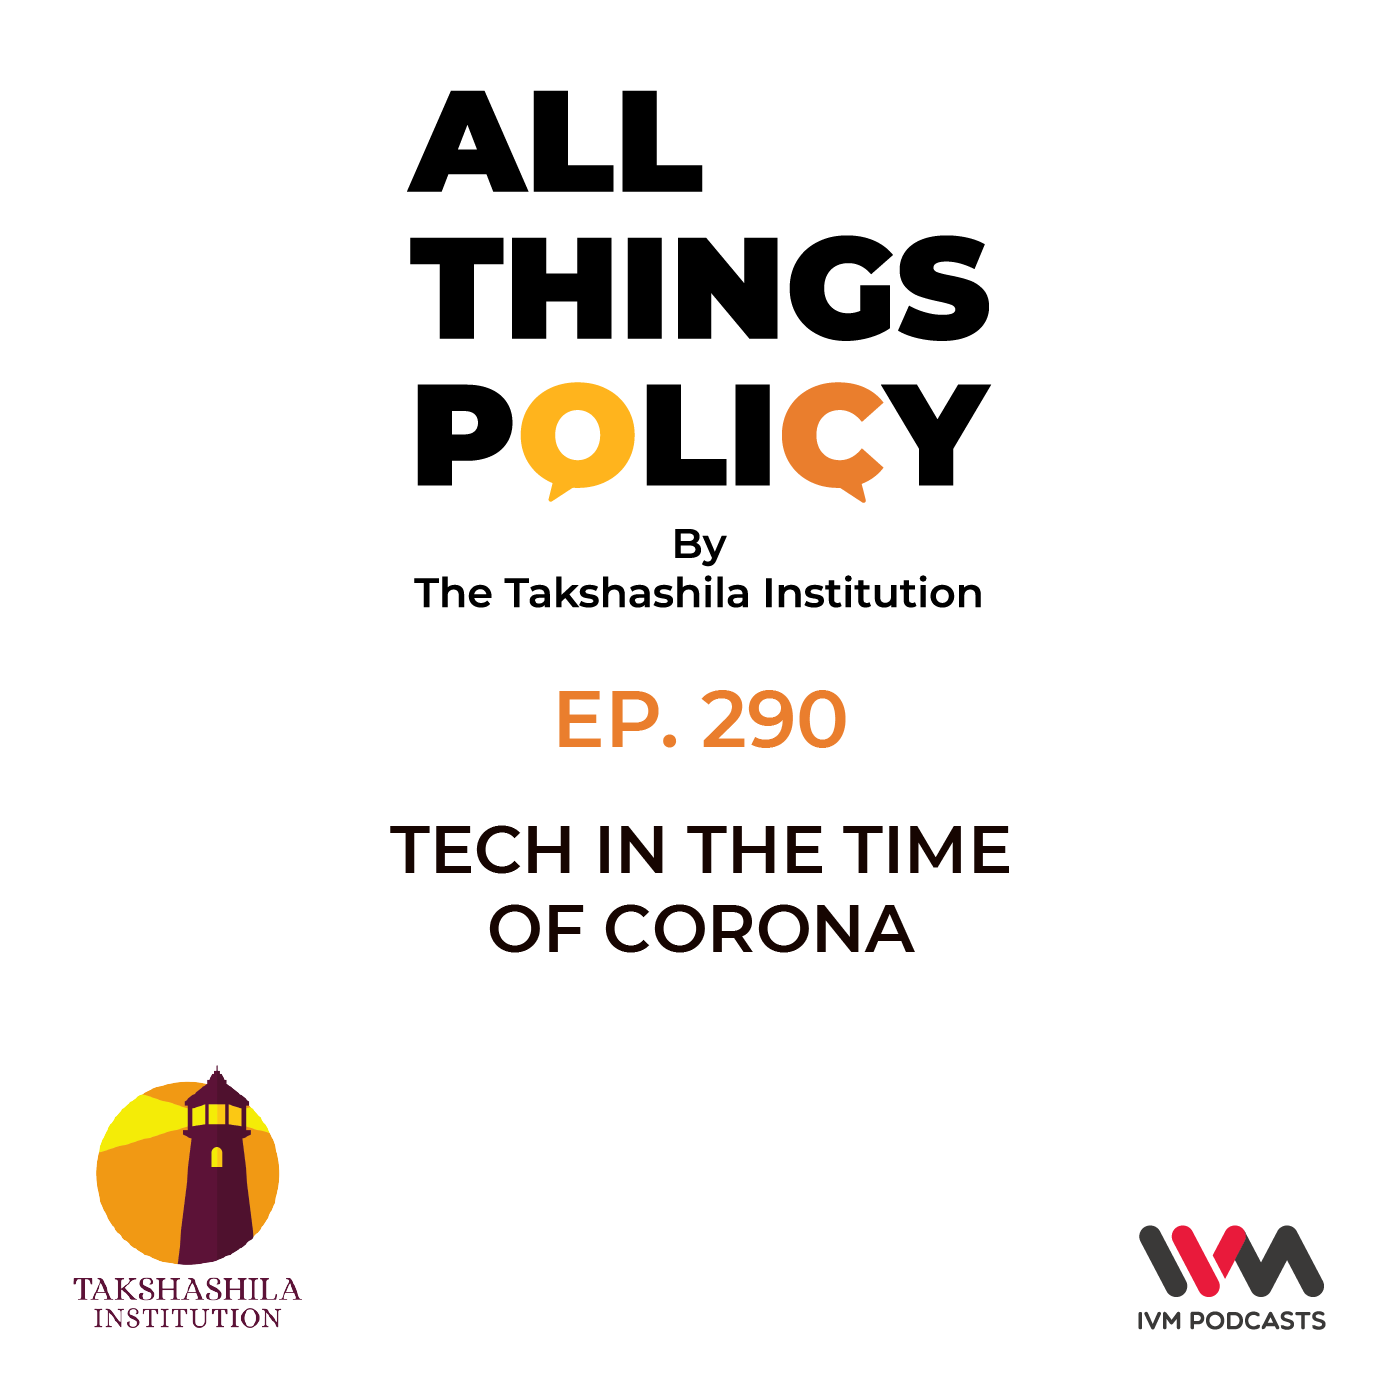 Ep. 290: Tech in the Time of Corona